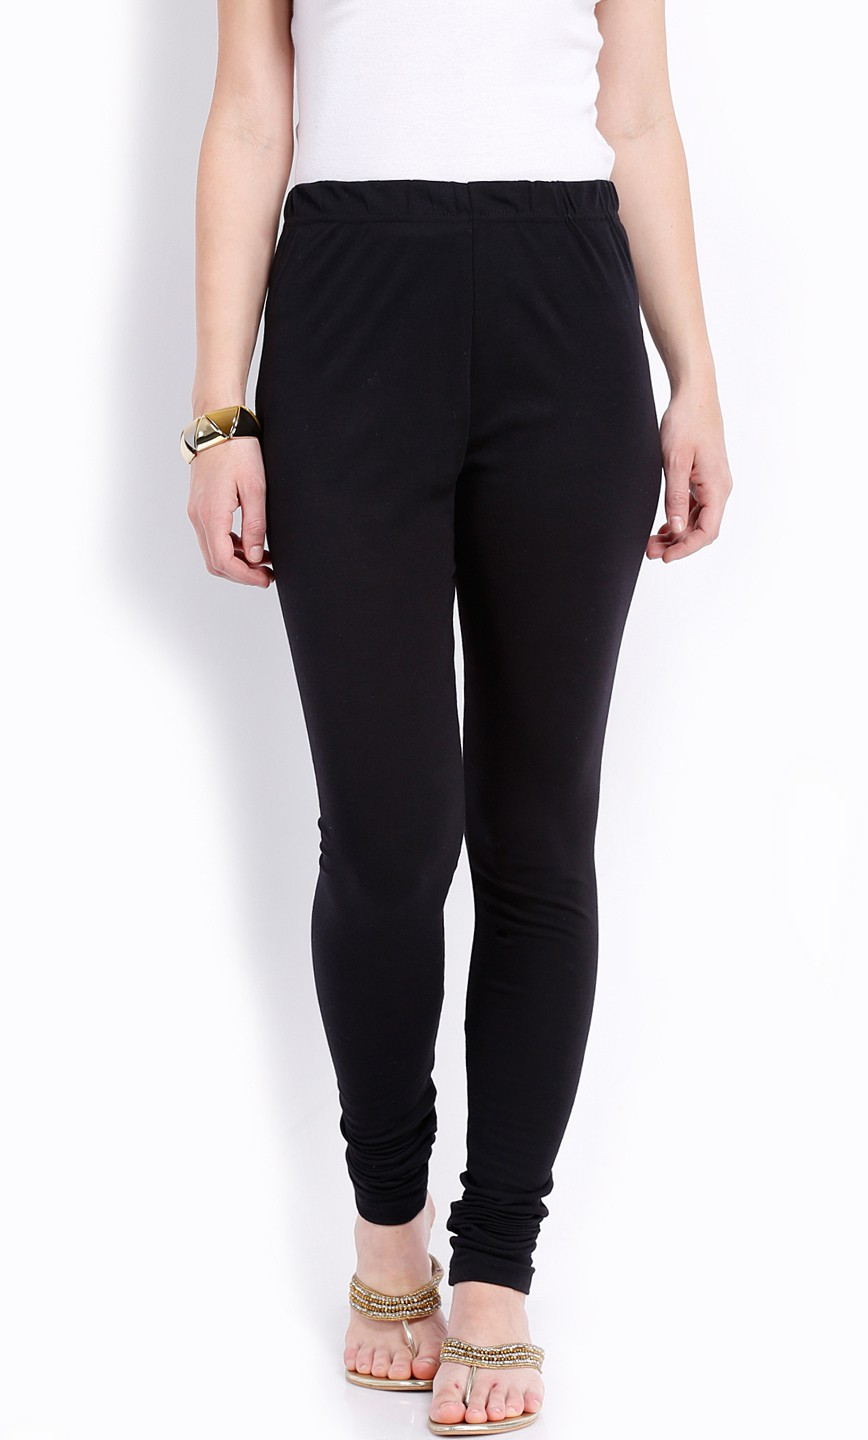 Ten on Ten Womens Black Leggings